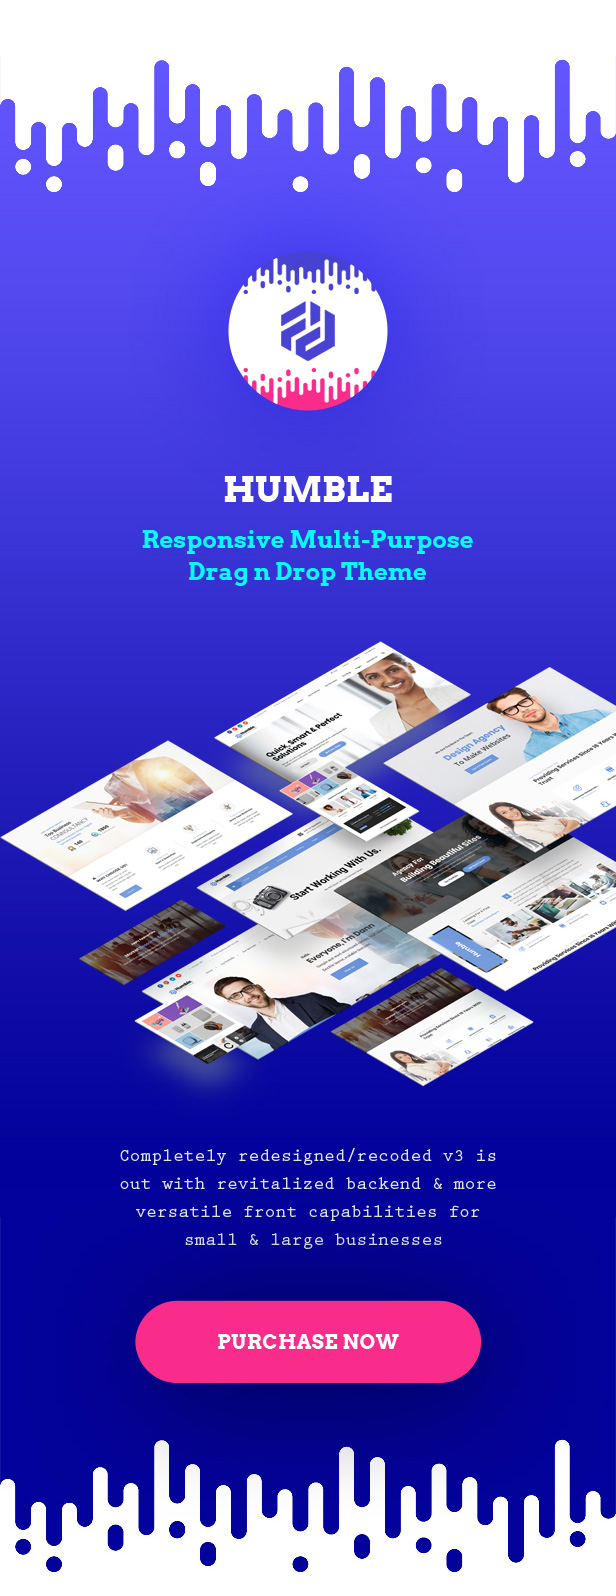 Humble. Responsive Multi-Purpose Drag n Drop Theme - 1